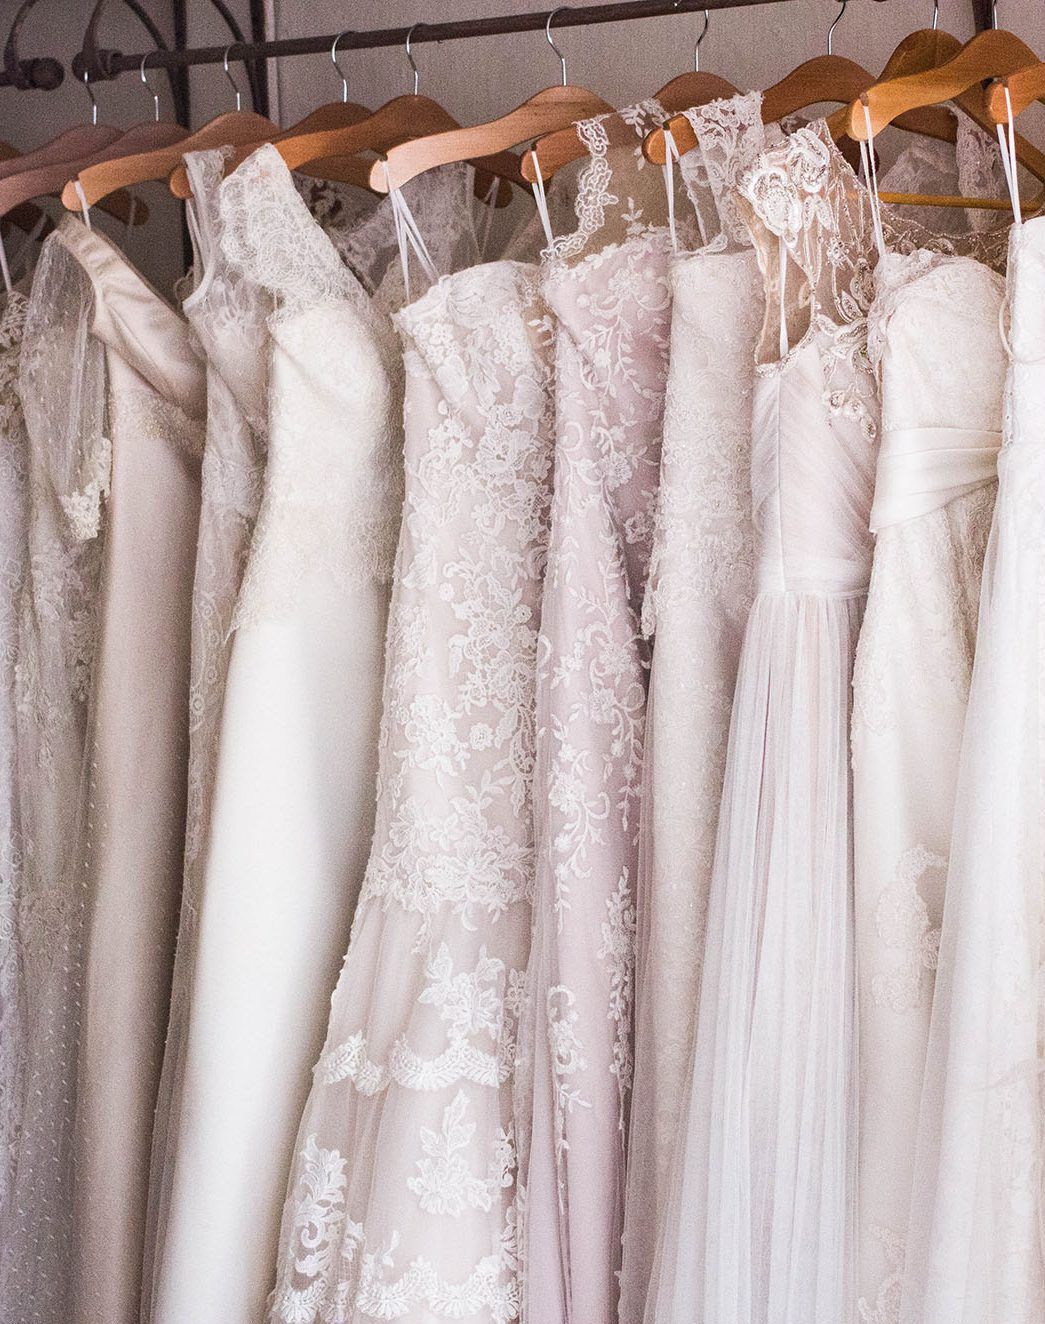 Wedding dresses on rack